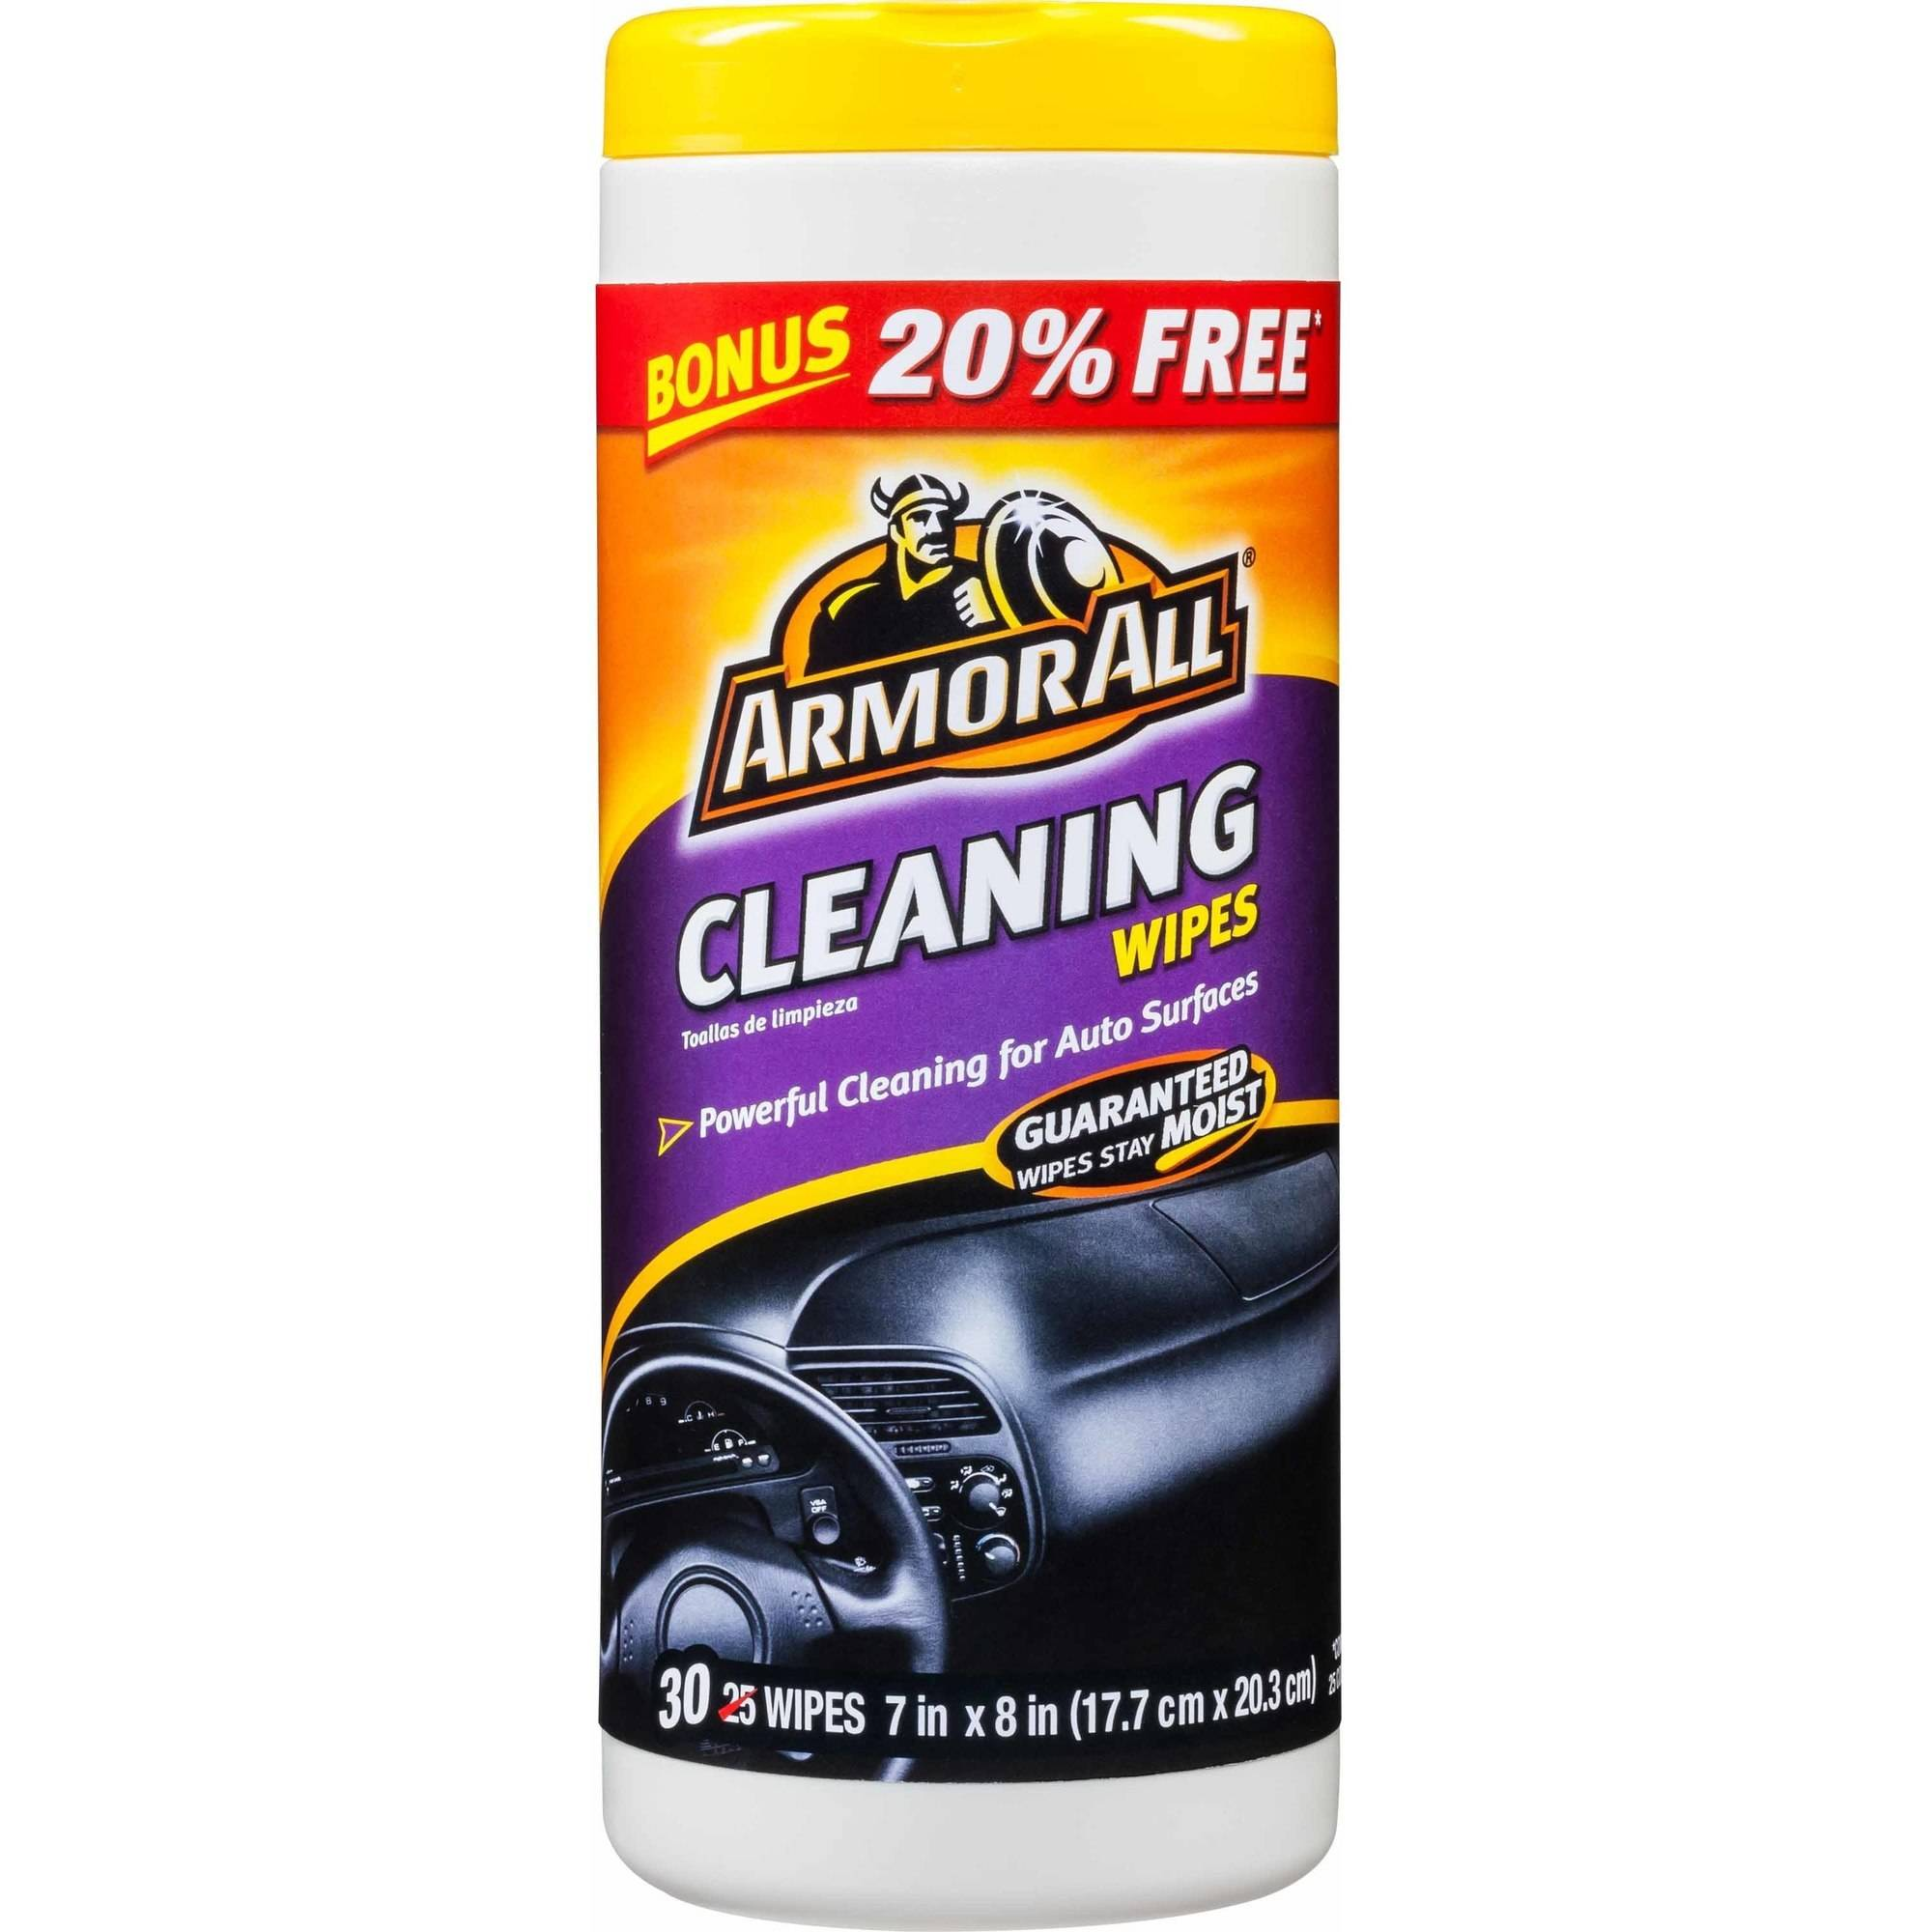 Armor All Cleaning Wipes, 30-Count